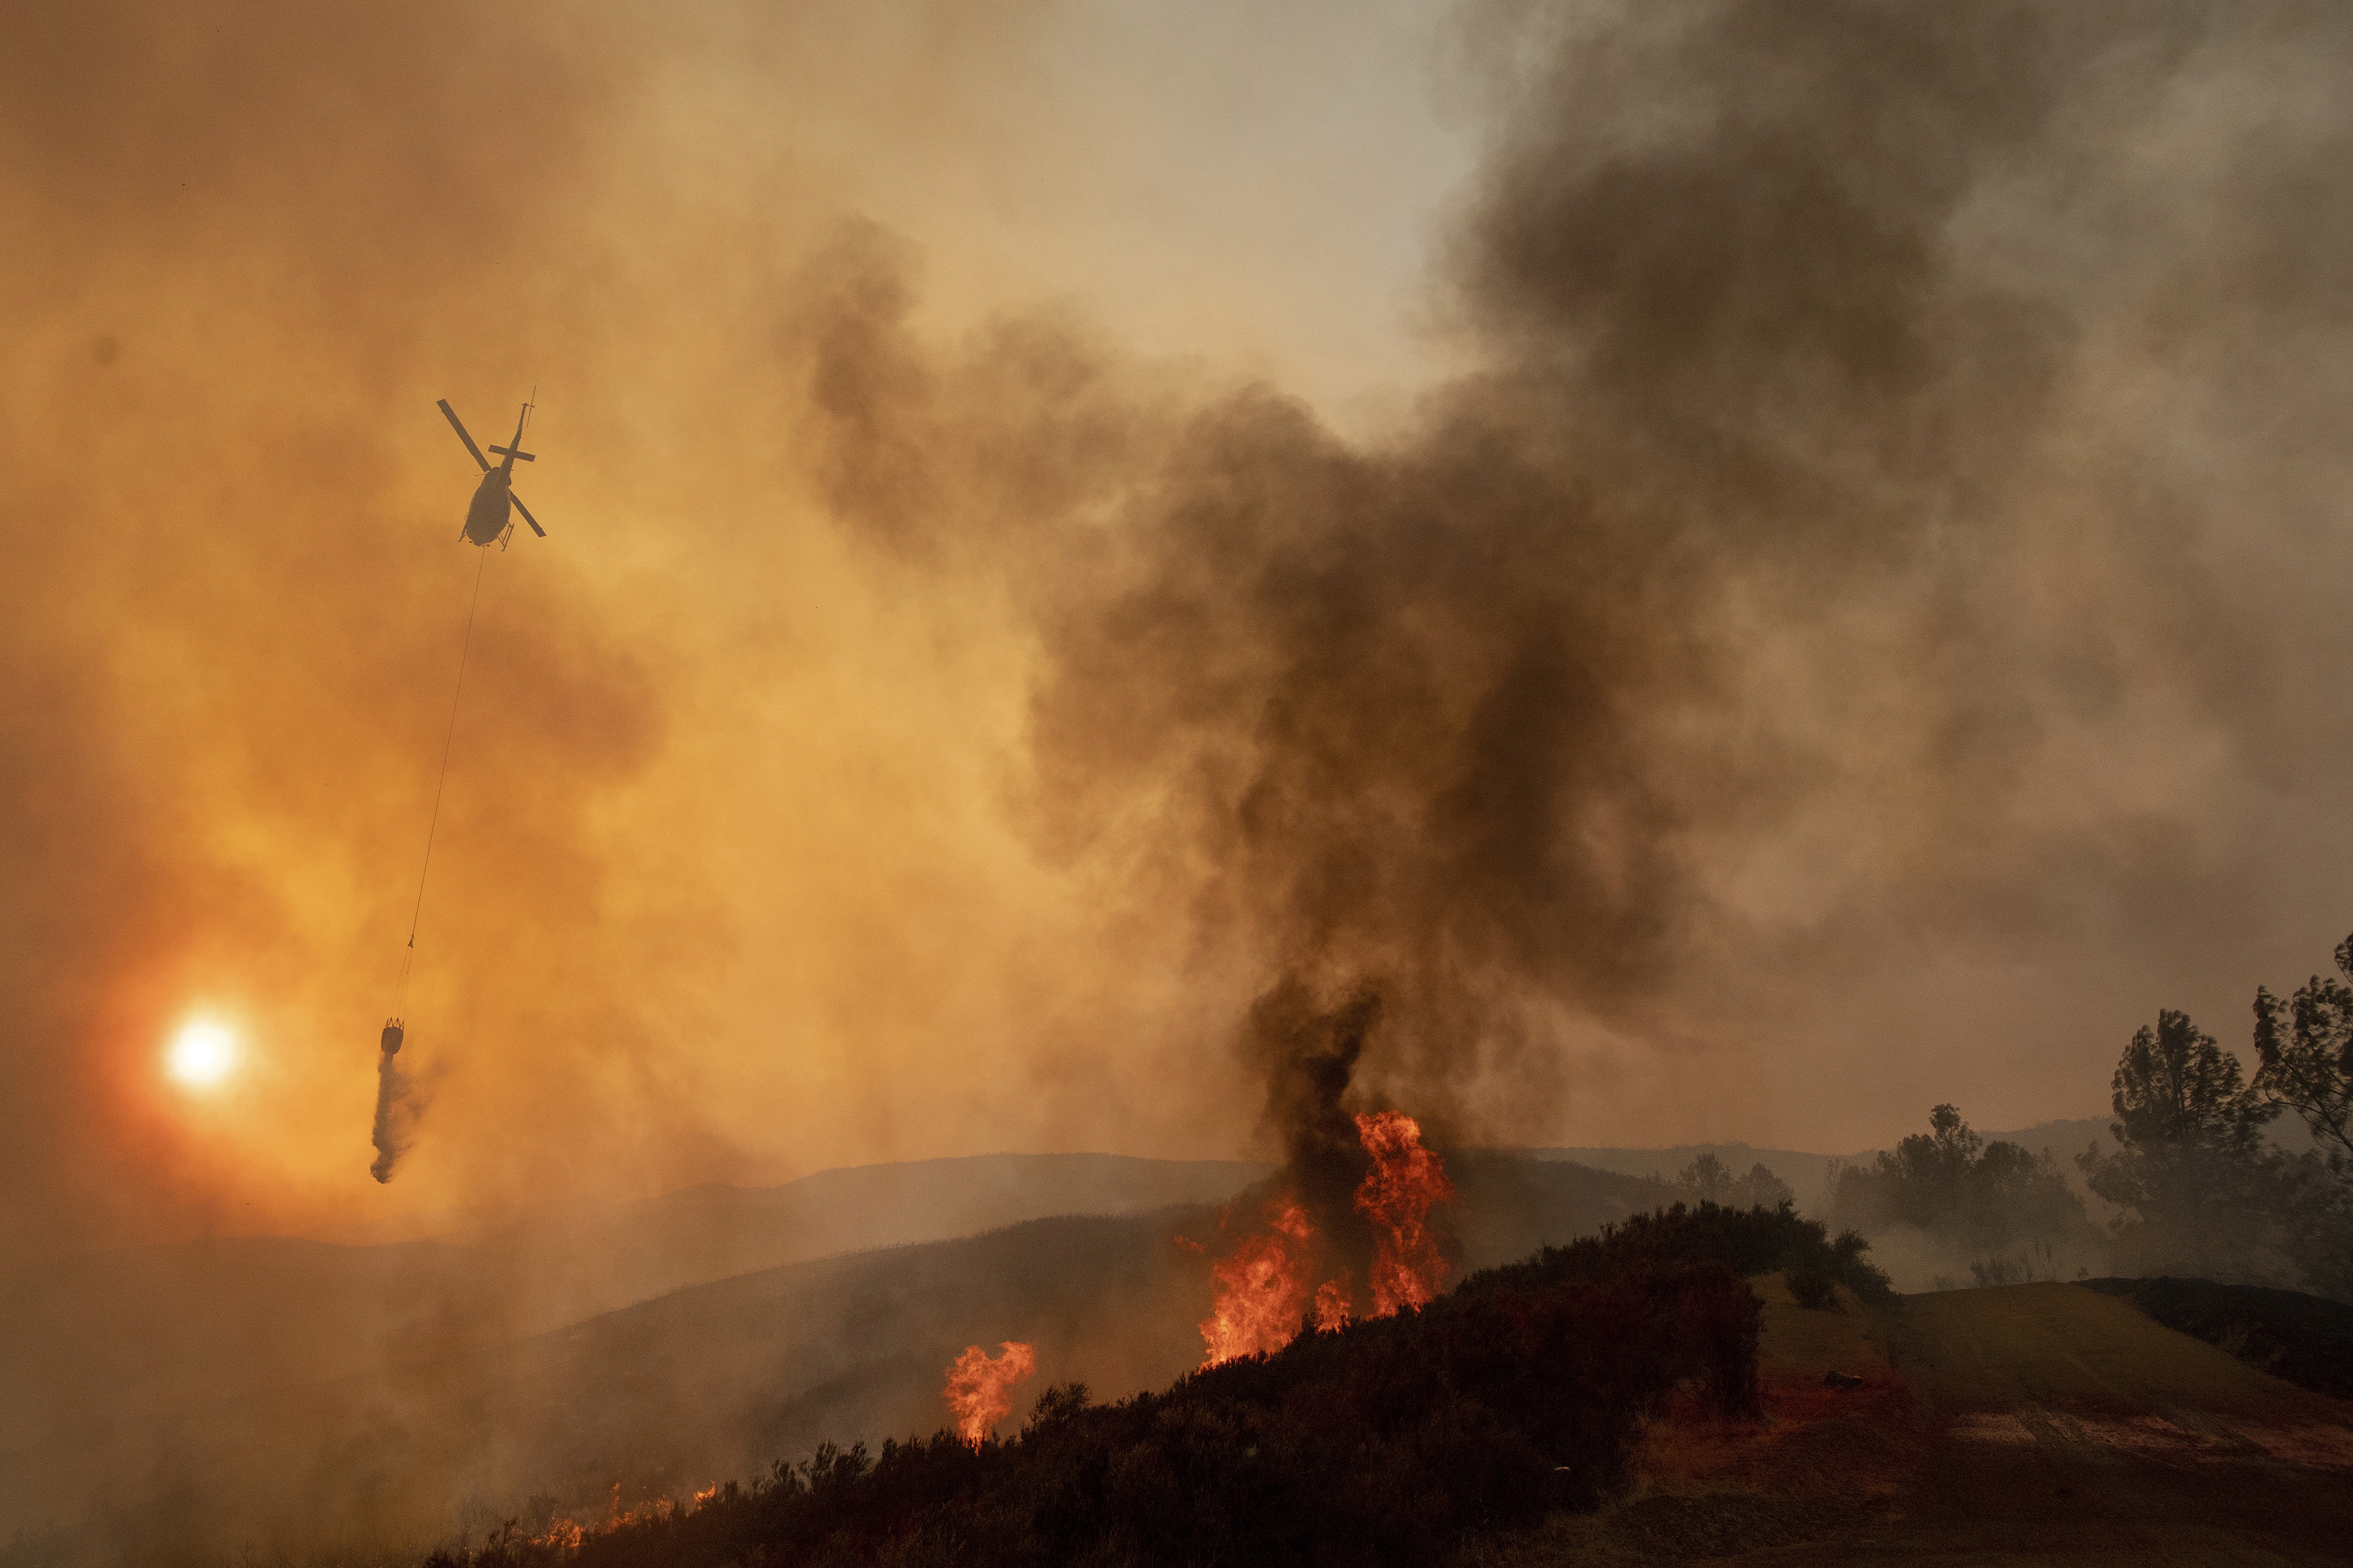 In this Sunday, Aug. 5, 2018, file photo, a helicopter drops water on a burning hillside during the Ranch Fire in Clearlake Oaks, Calif. Authorities say a rapidly expanding Northern California wildfire burning over an area the size of Los Angeles has become the state's largest blaze in recorded history. It's the second year in a row that California has recorded the state's largest wildfire. (Josh Edelson, File/AP)